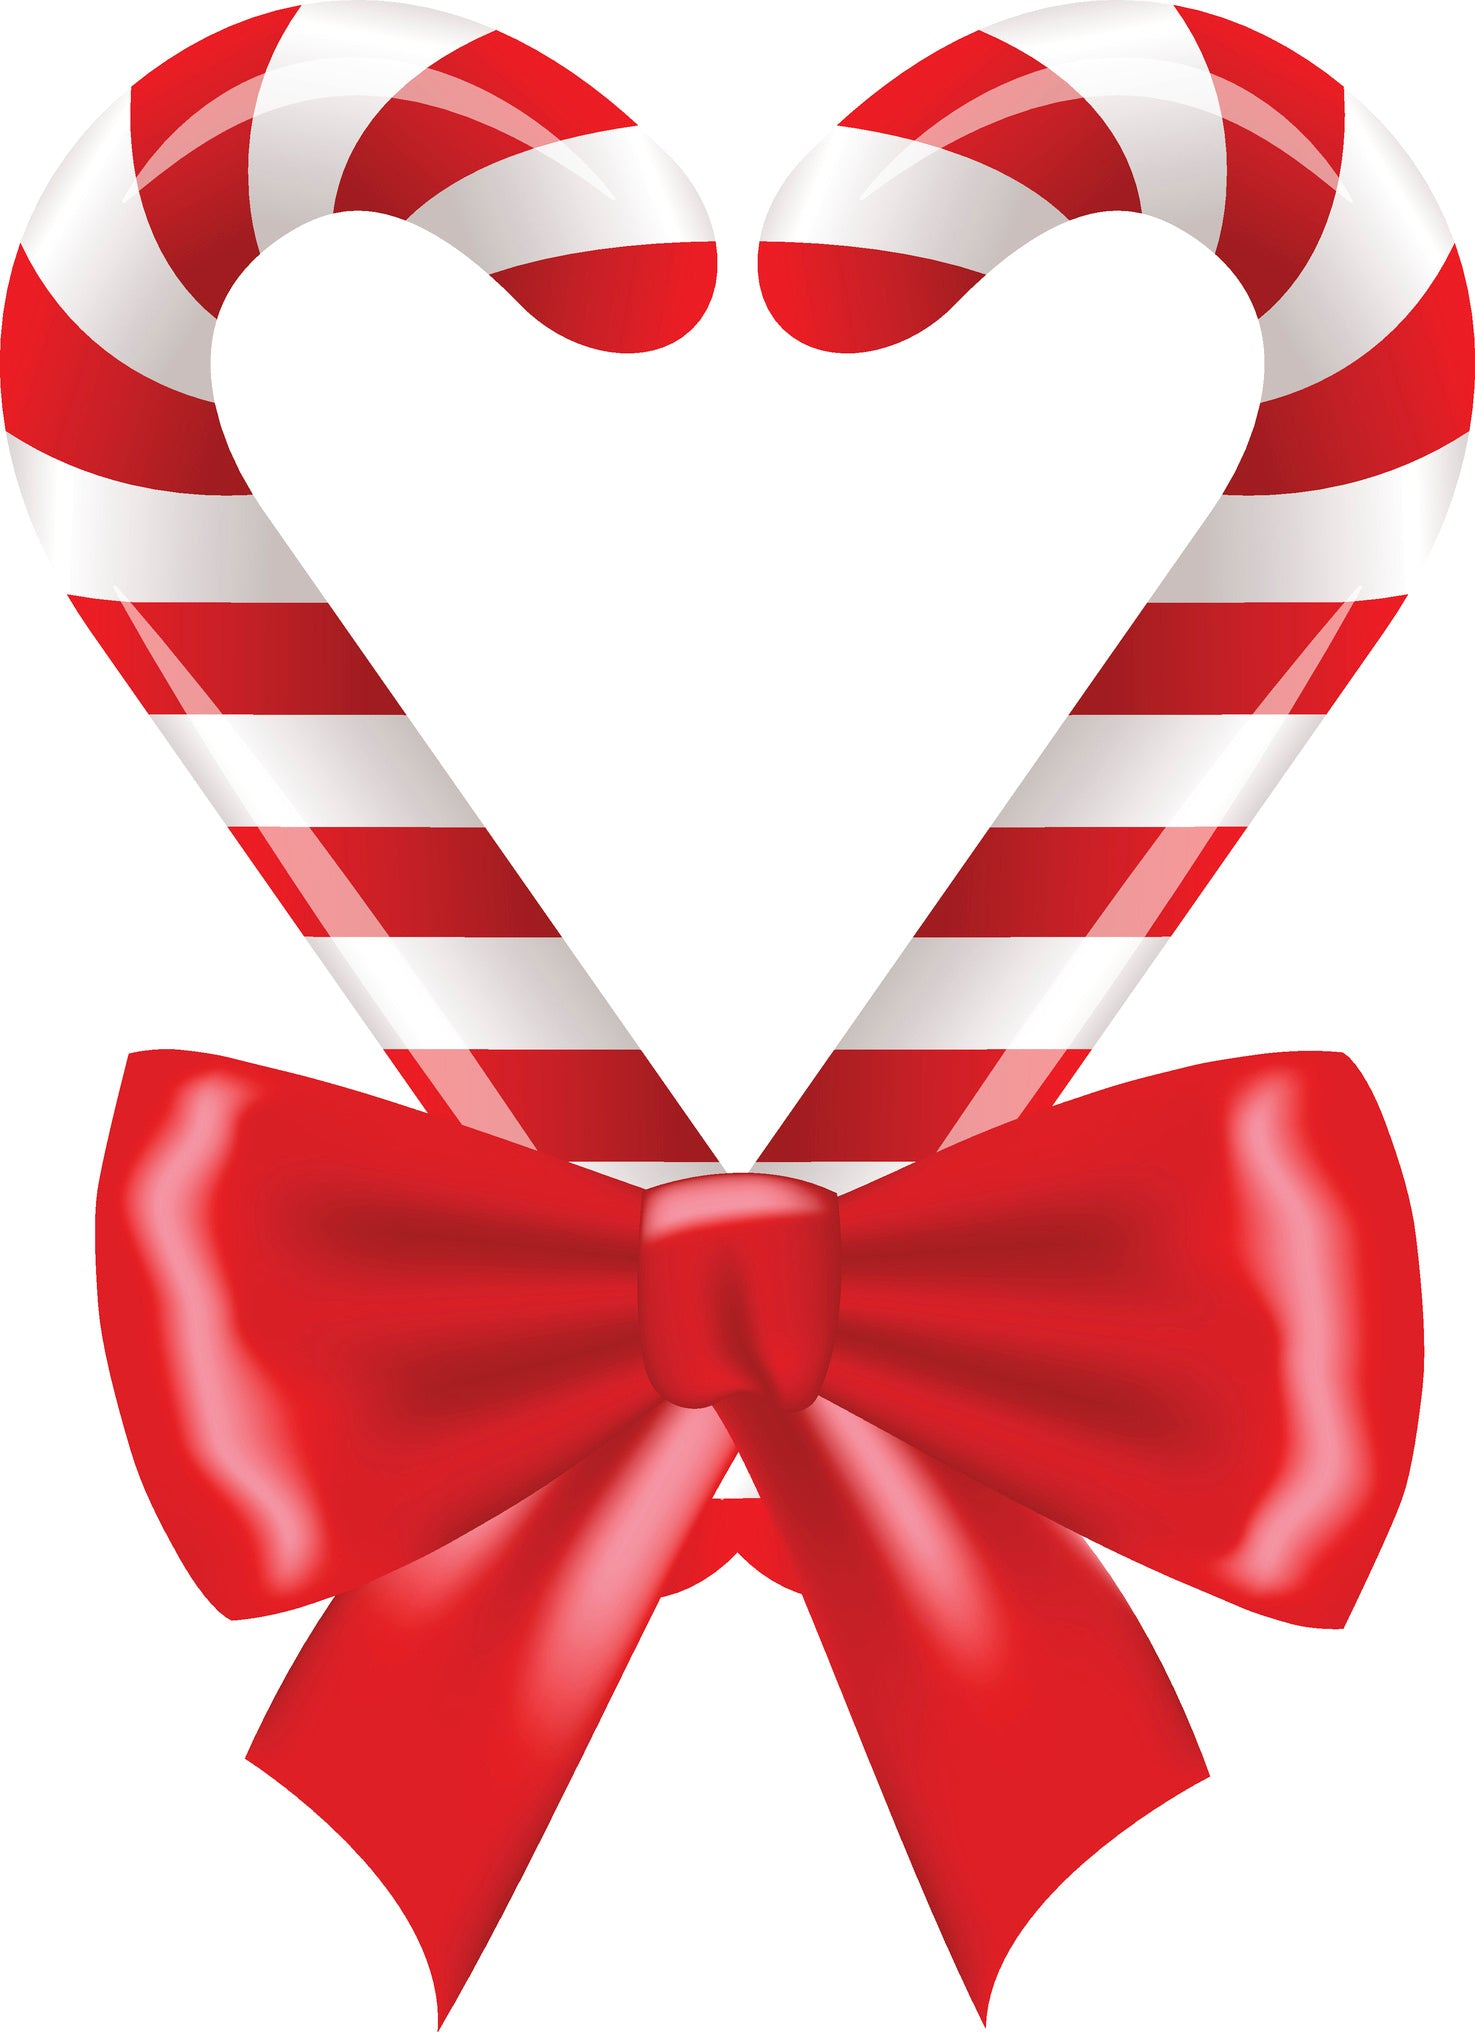 Christmas Candy.Holiday Christmas Candy Cane Heart With Bow Vinyl Decal Sticker